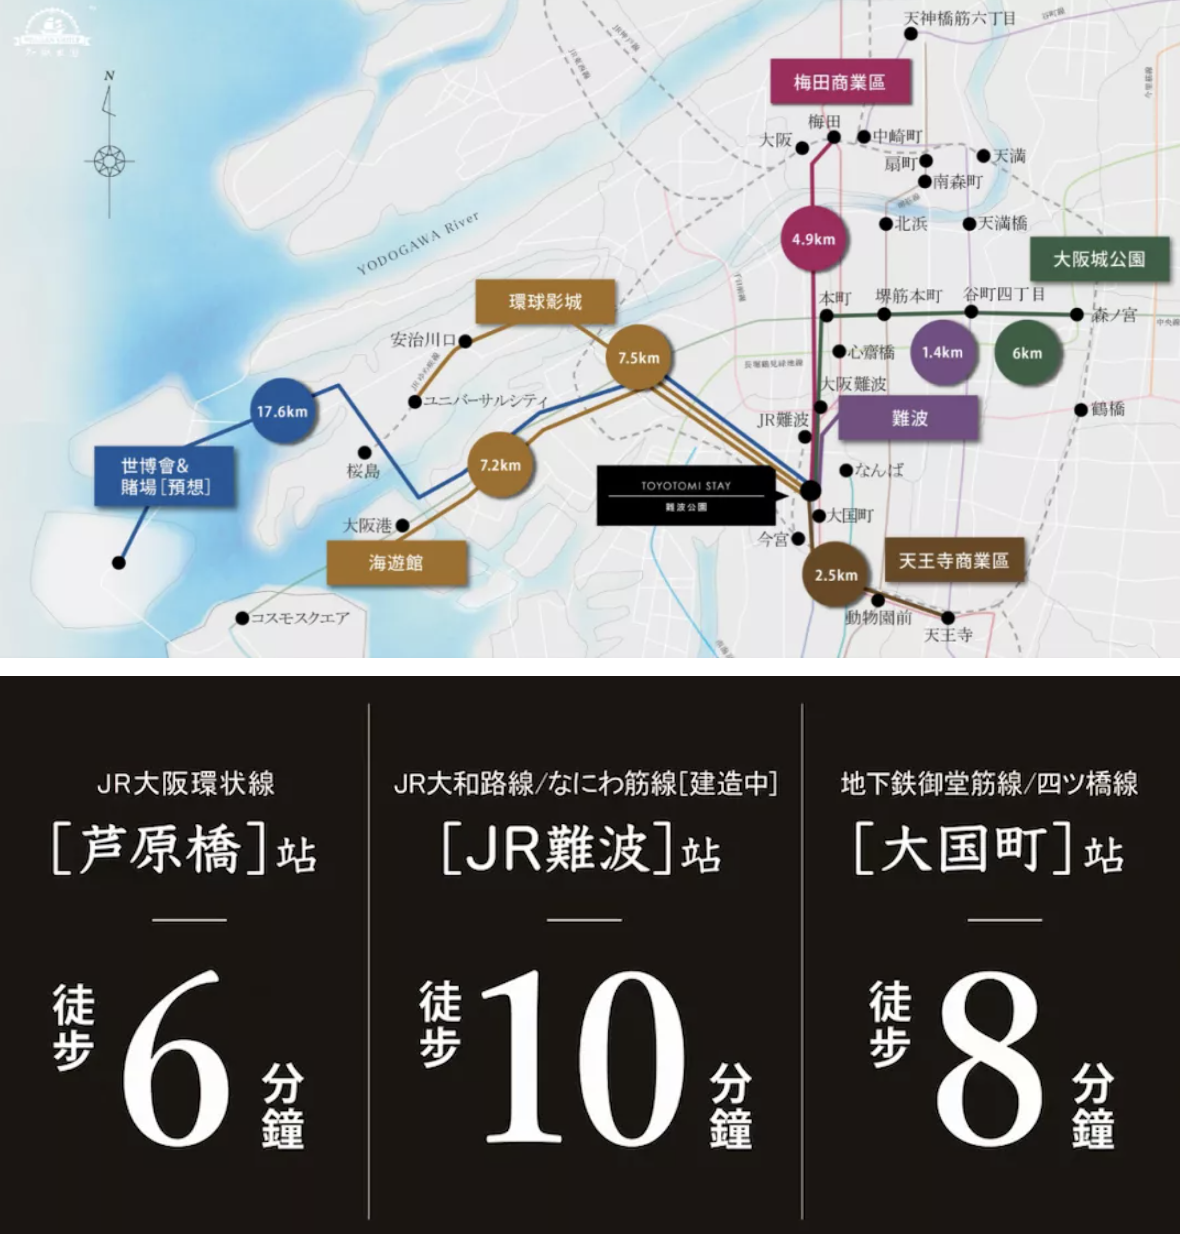 WX20210512-171234@2x.png